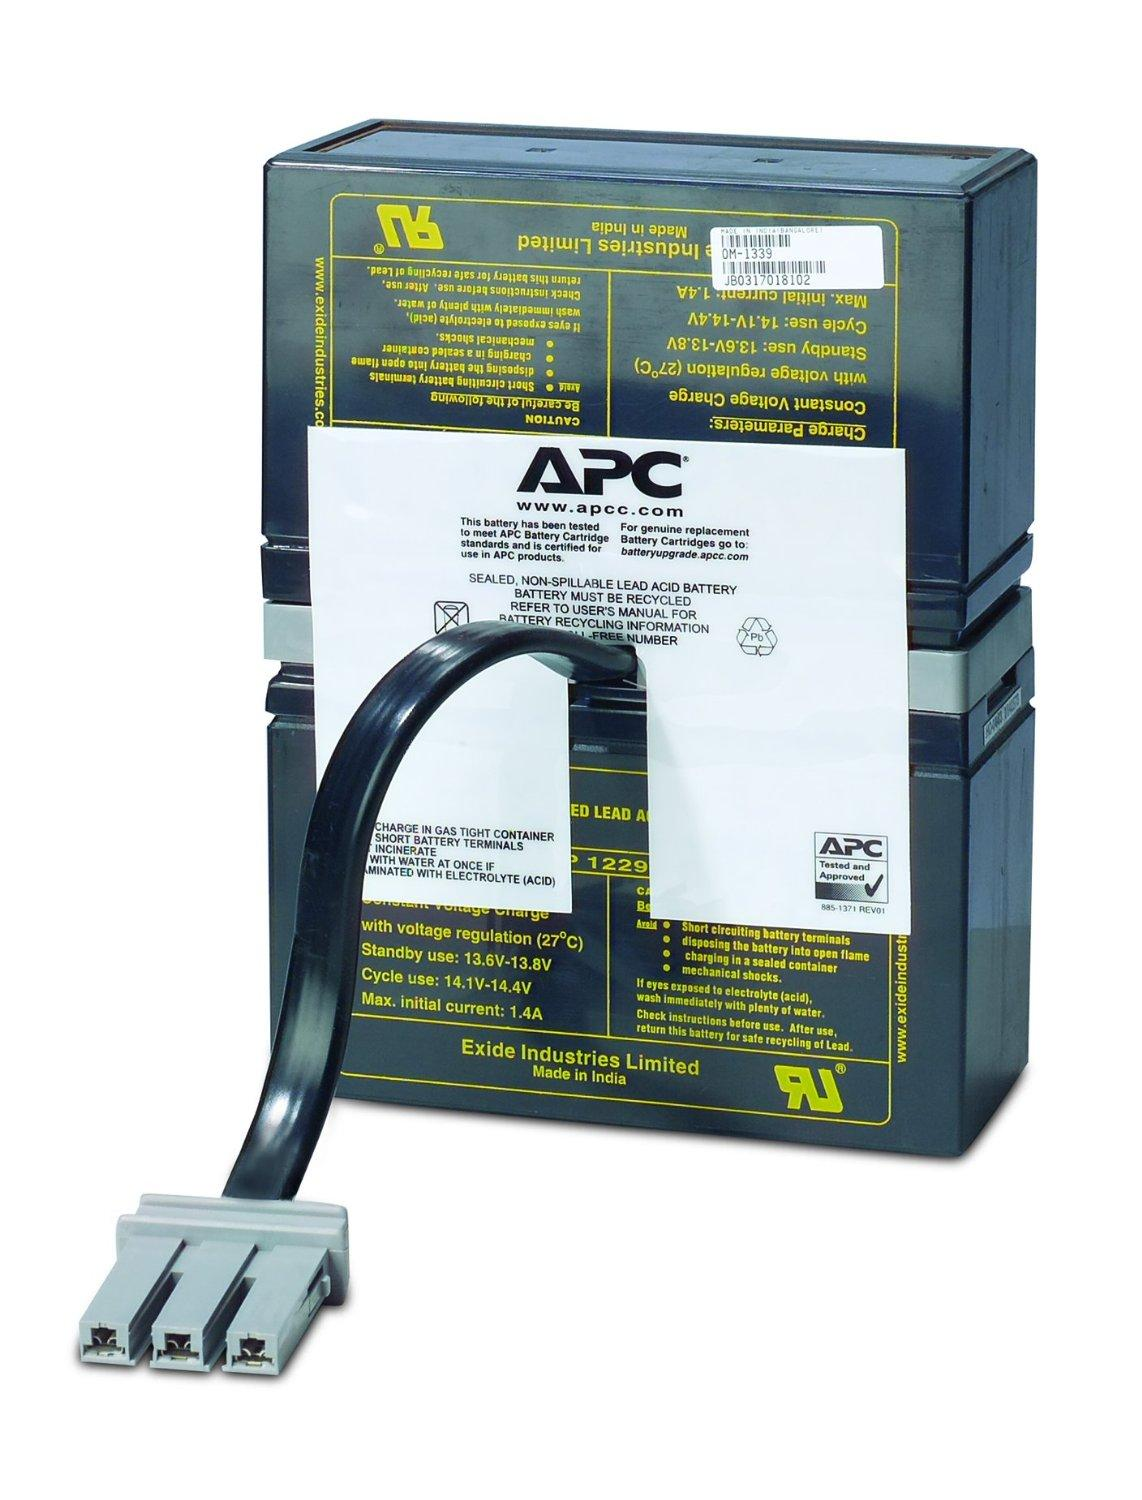 APC UPS Battery Replacement for APC Back-UPS Models BR1000, BX1000, BN1050,  BN1250, BR1200, BR500, BR800, BR900, BX1200, BX800, BX900 and select